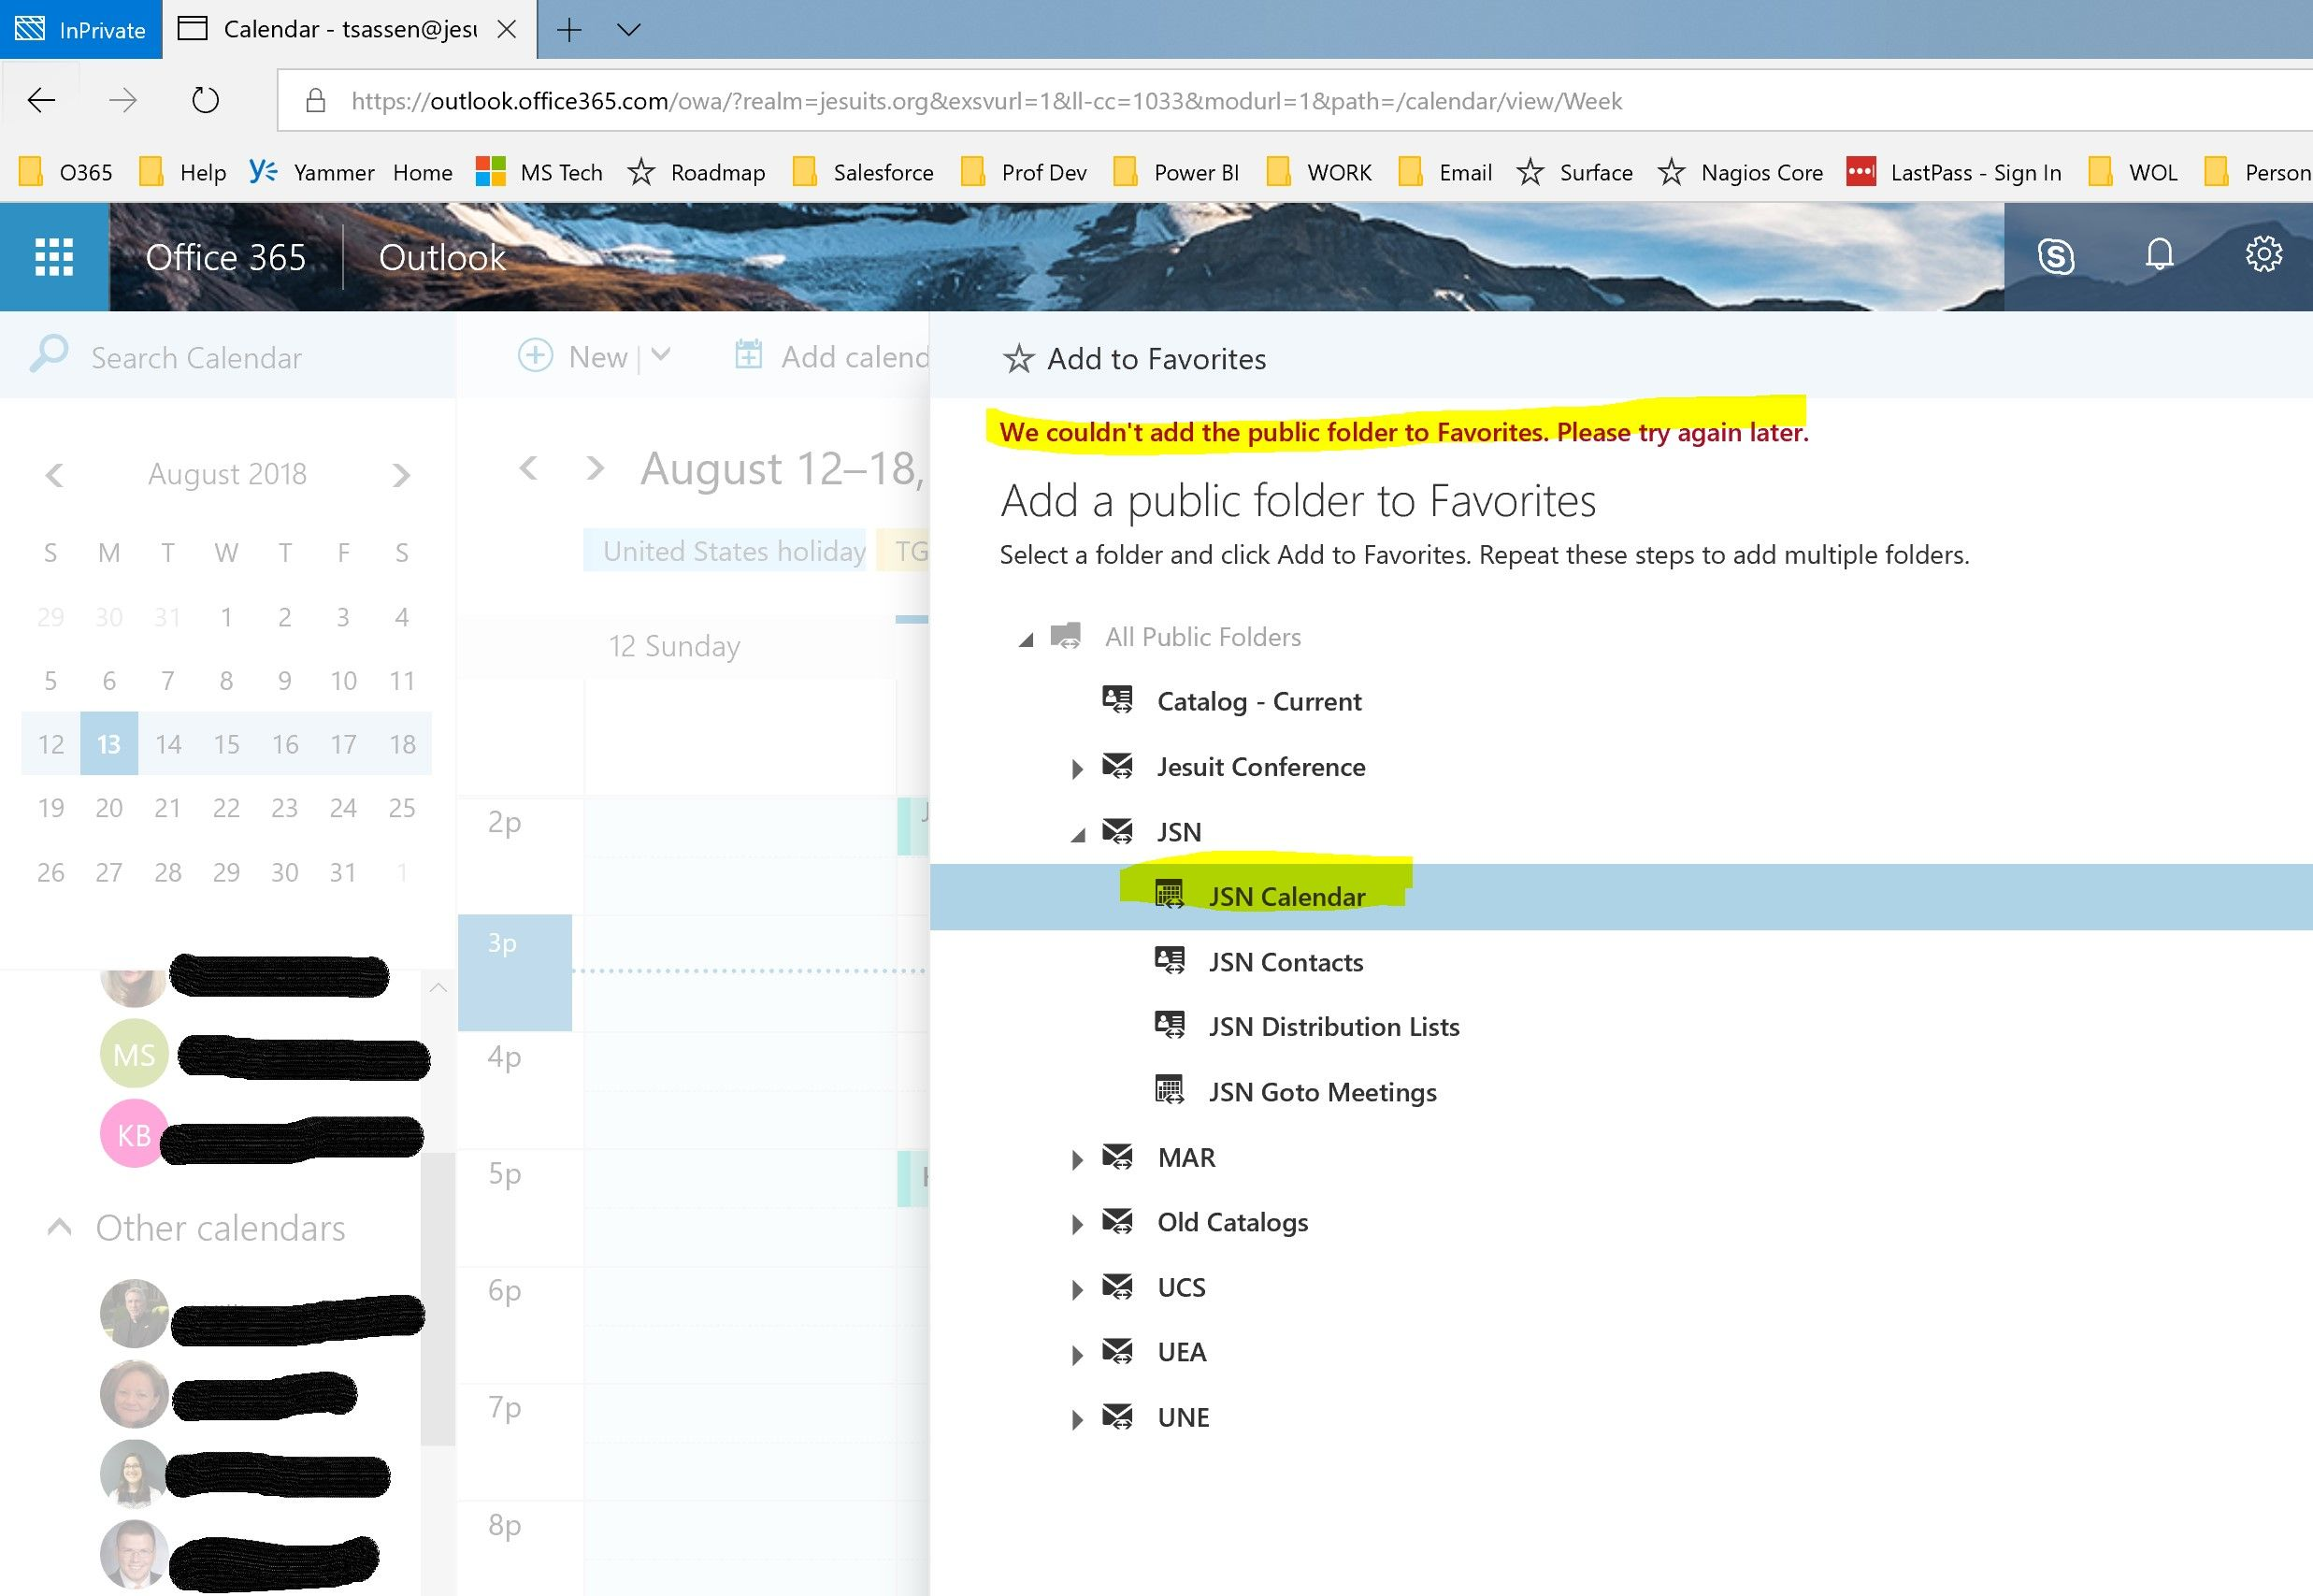 Add To Favorites public folder calendars will not add as favorites in outlook